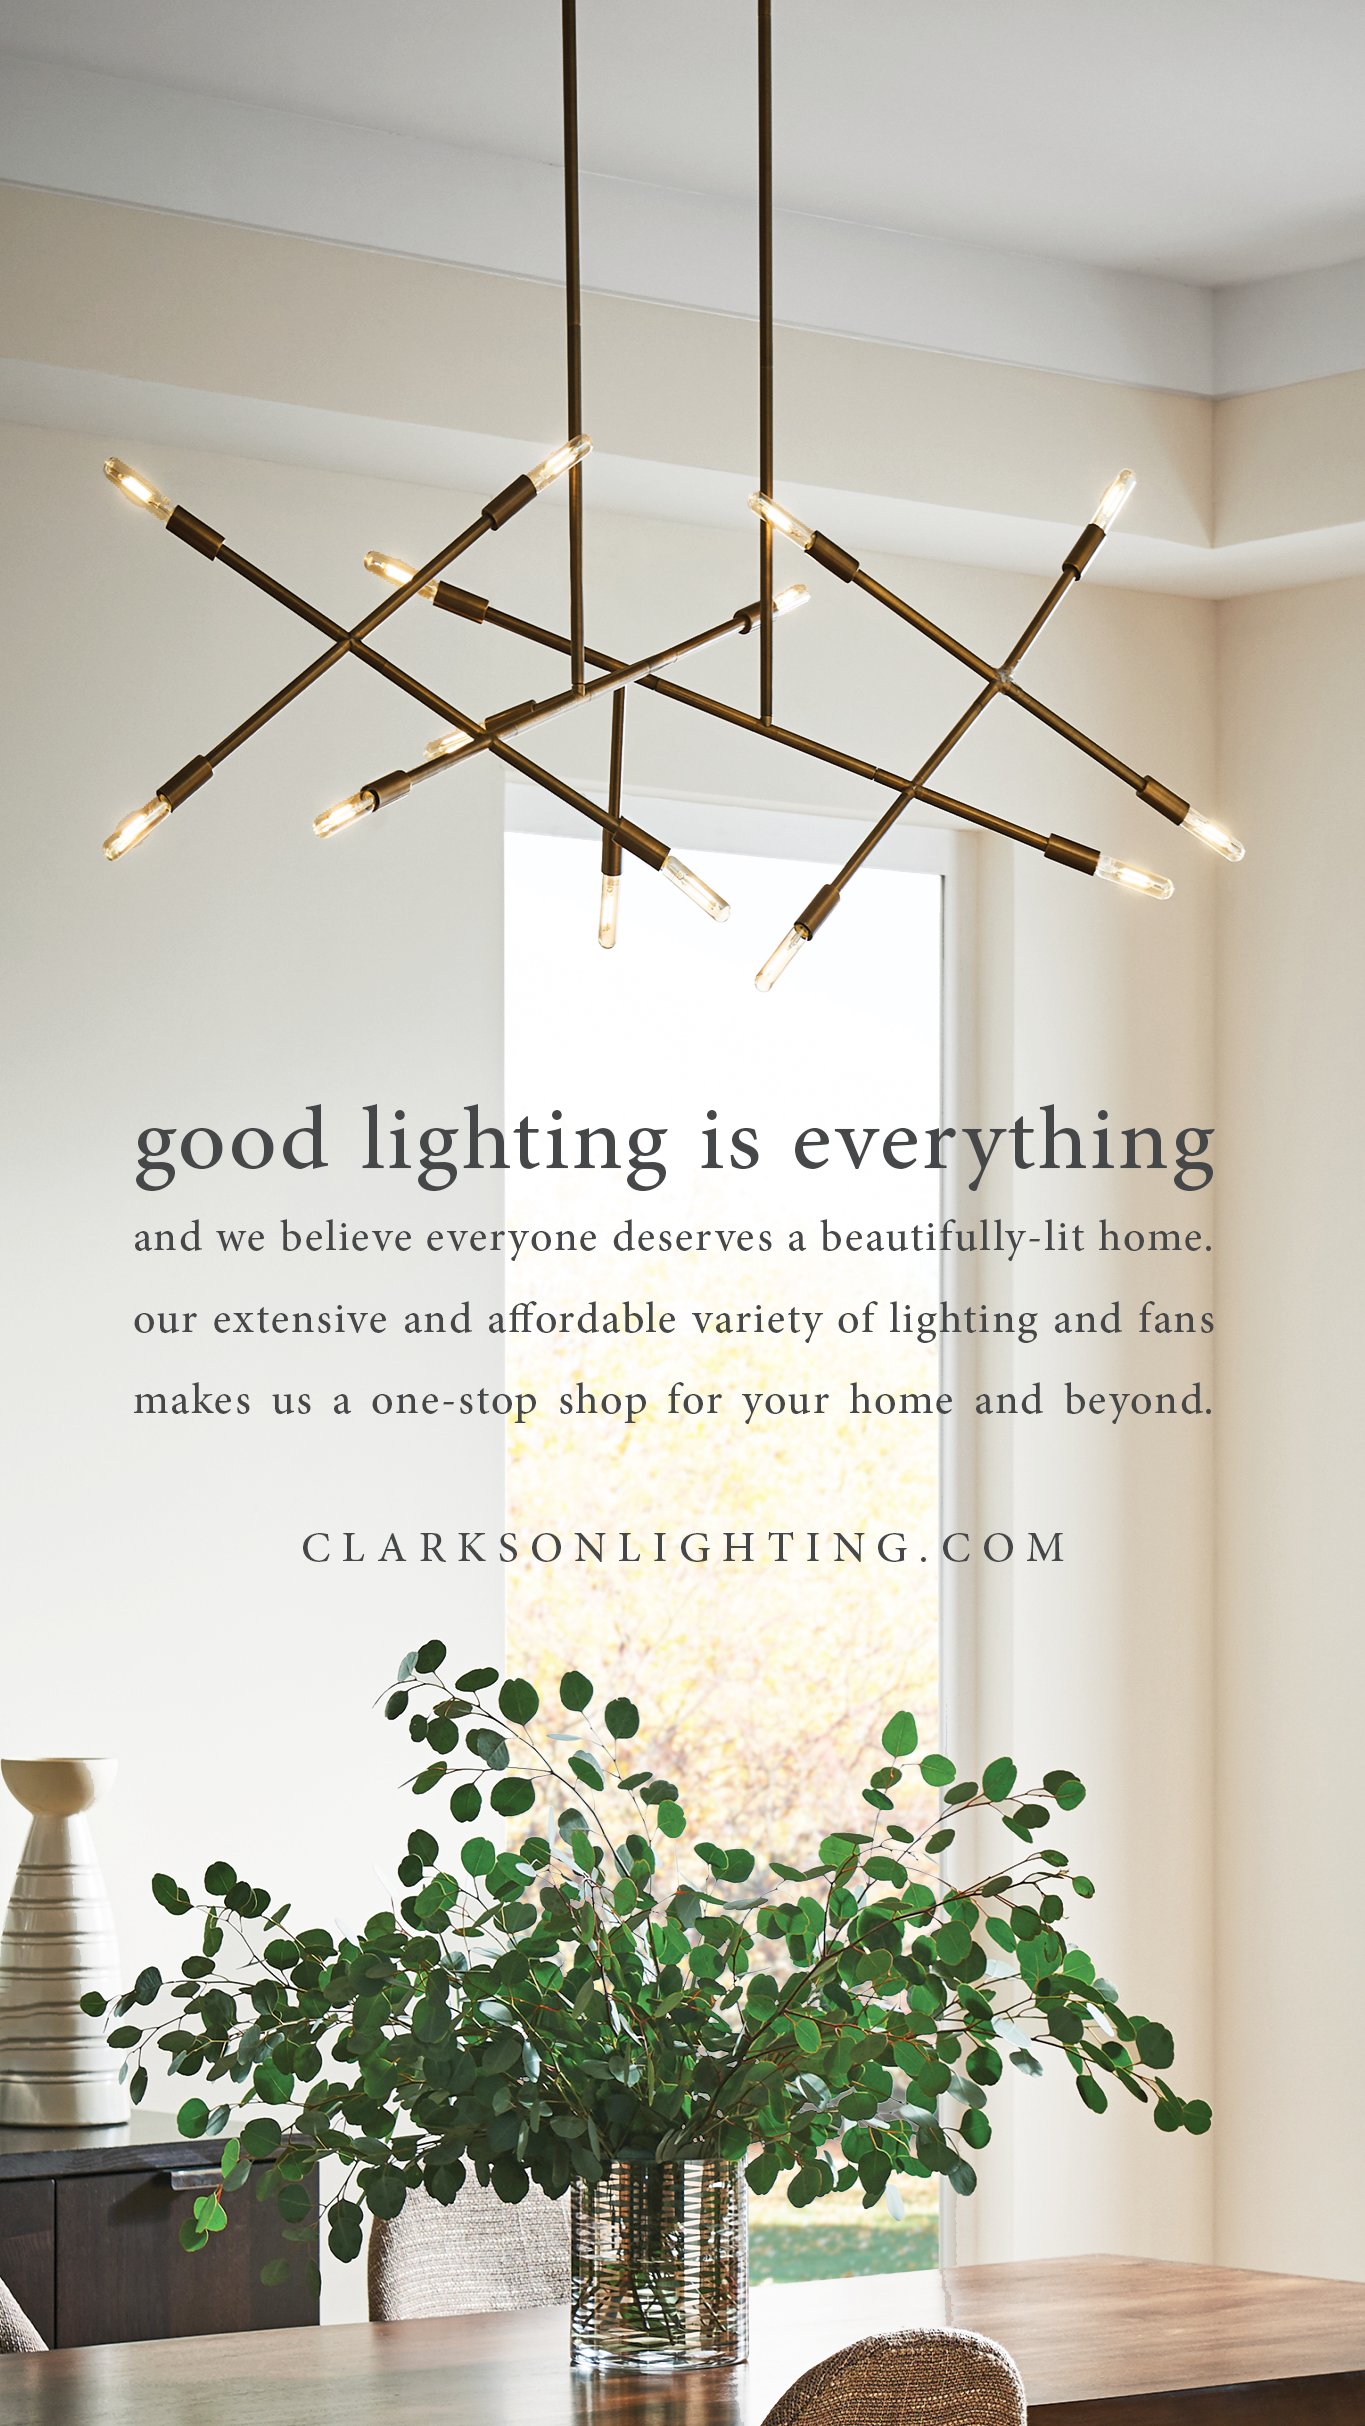 Linear Light Fixtures And Chandeliers Are A Great Way To Modernize